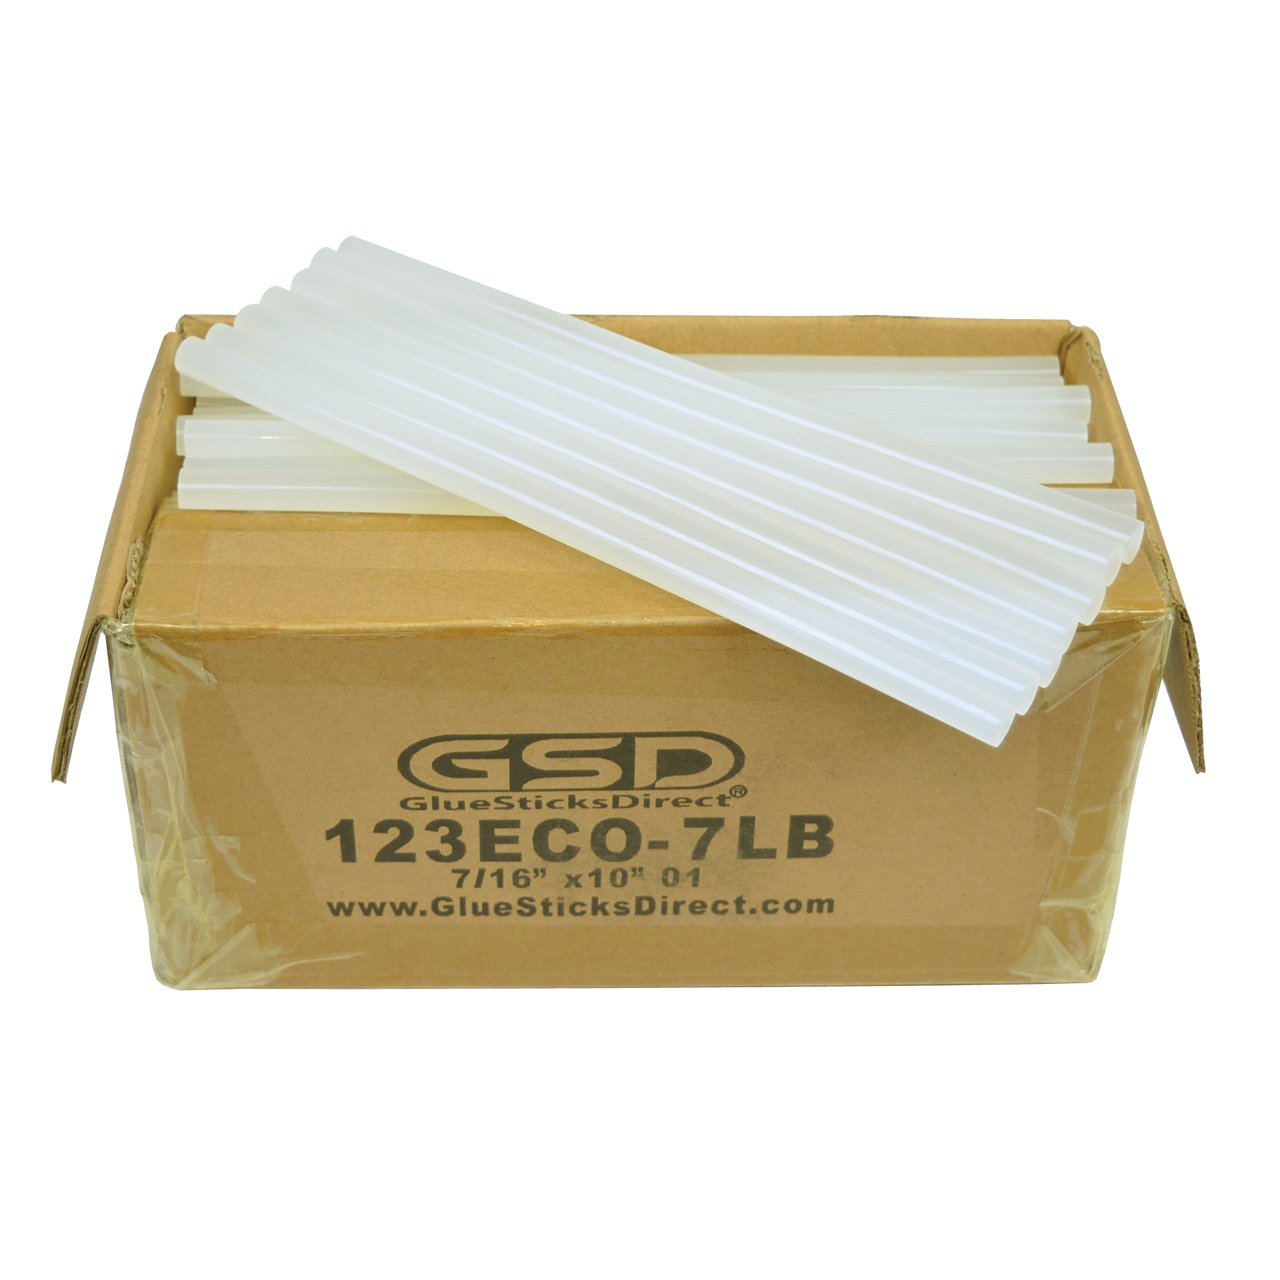 Economy Hot Melt Glue Sticks 7/16'' X 10'' 125 Sticks 7 lbs bulk by GlueSticksDirect.com (Image #1)